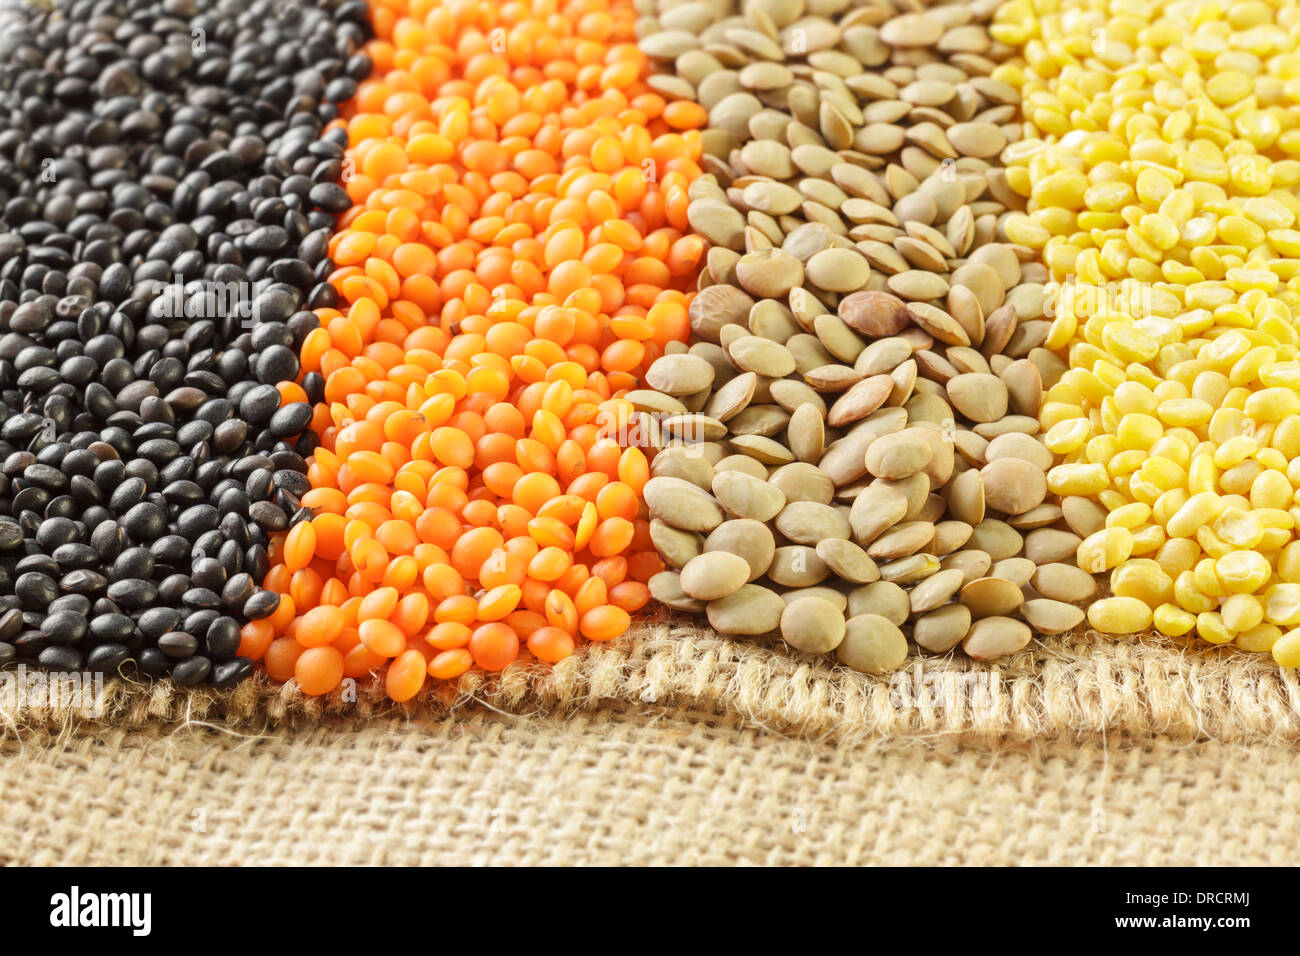 Varied types of Lentils - Stock Image